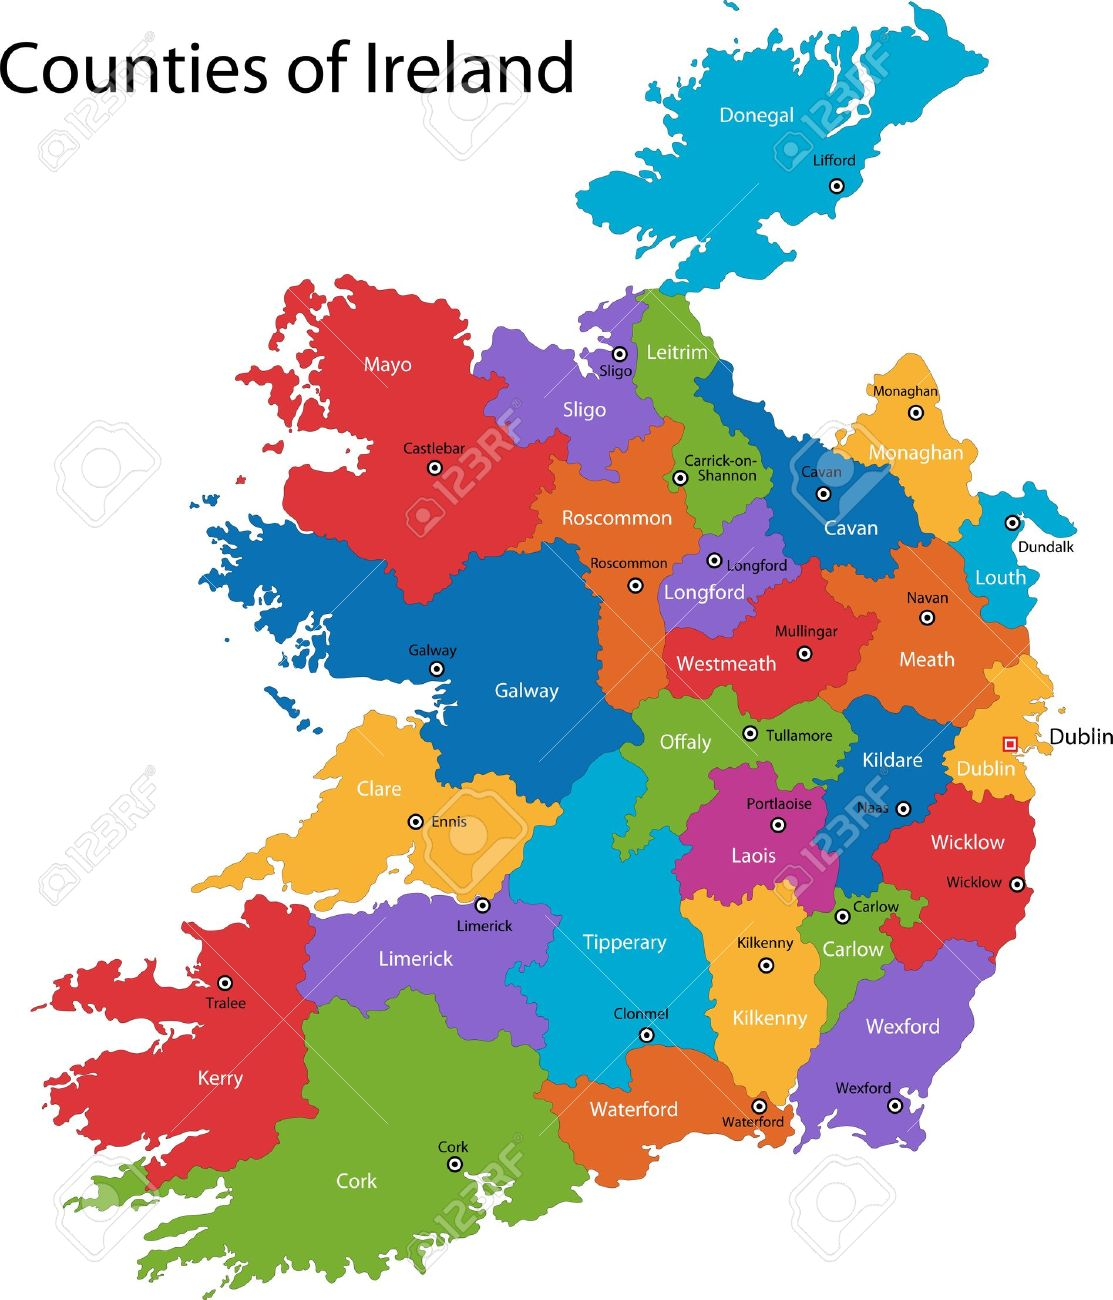 Map Of Ireland Major Cities.Colorful Republic Of Ireland Map With Regions And Main Cities